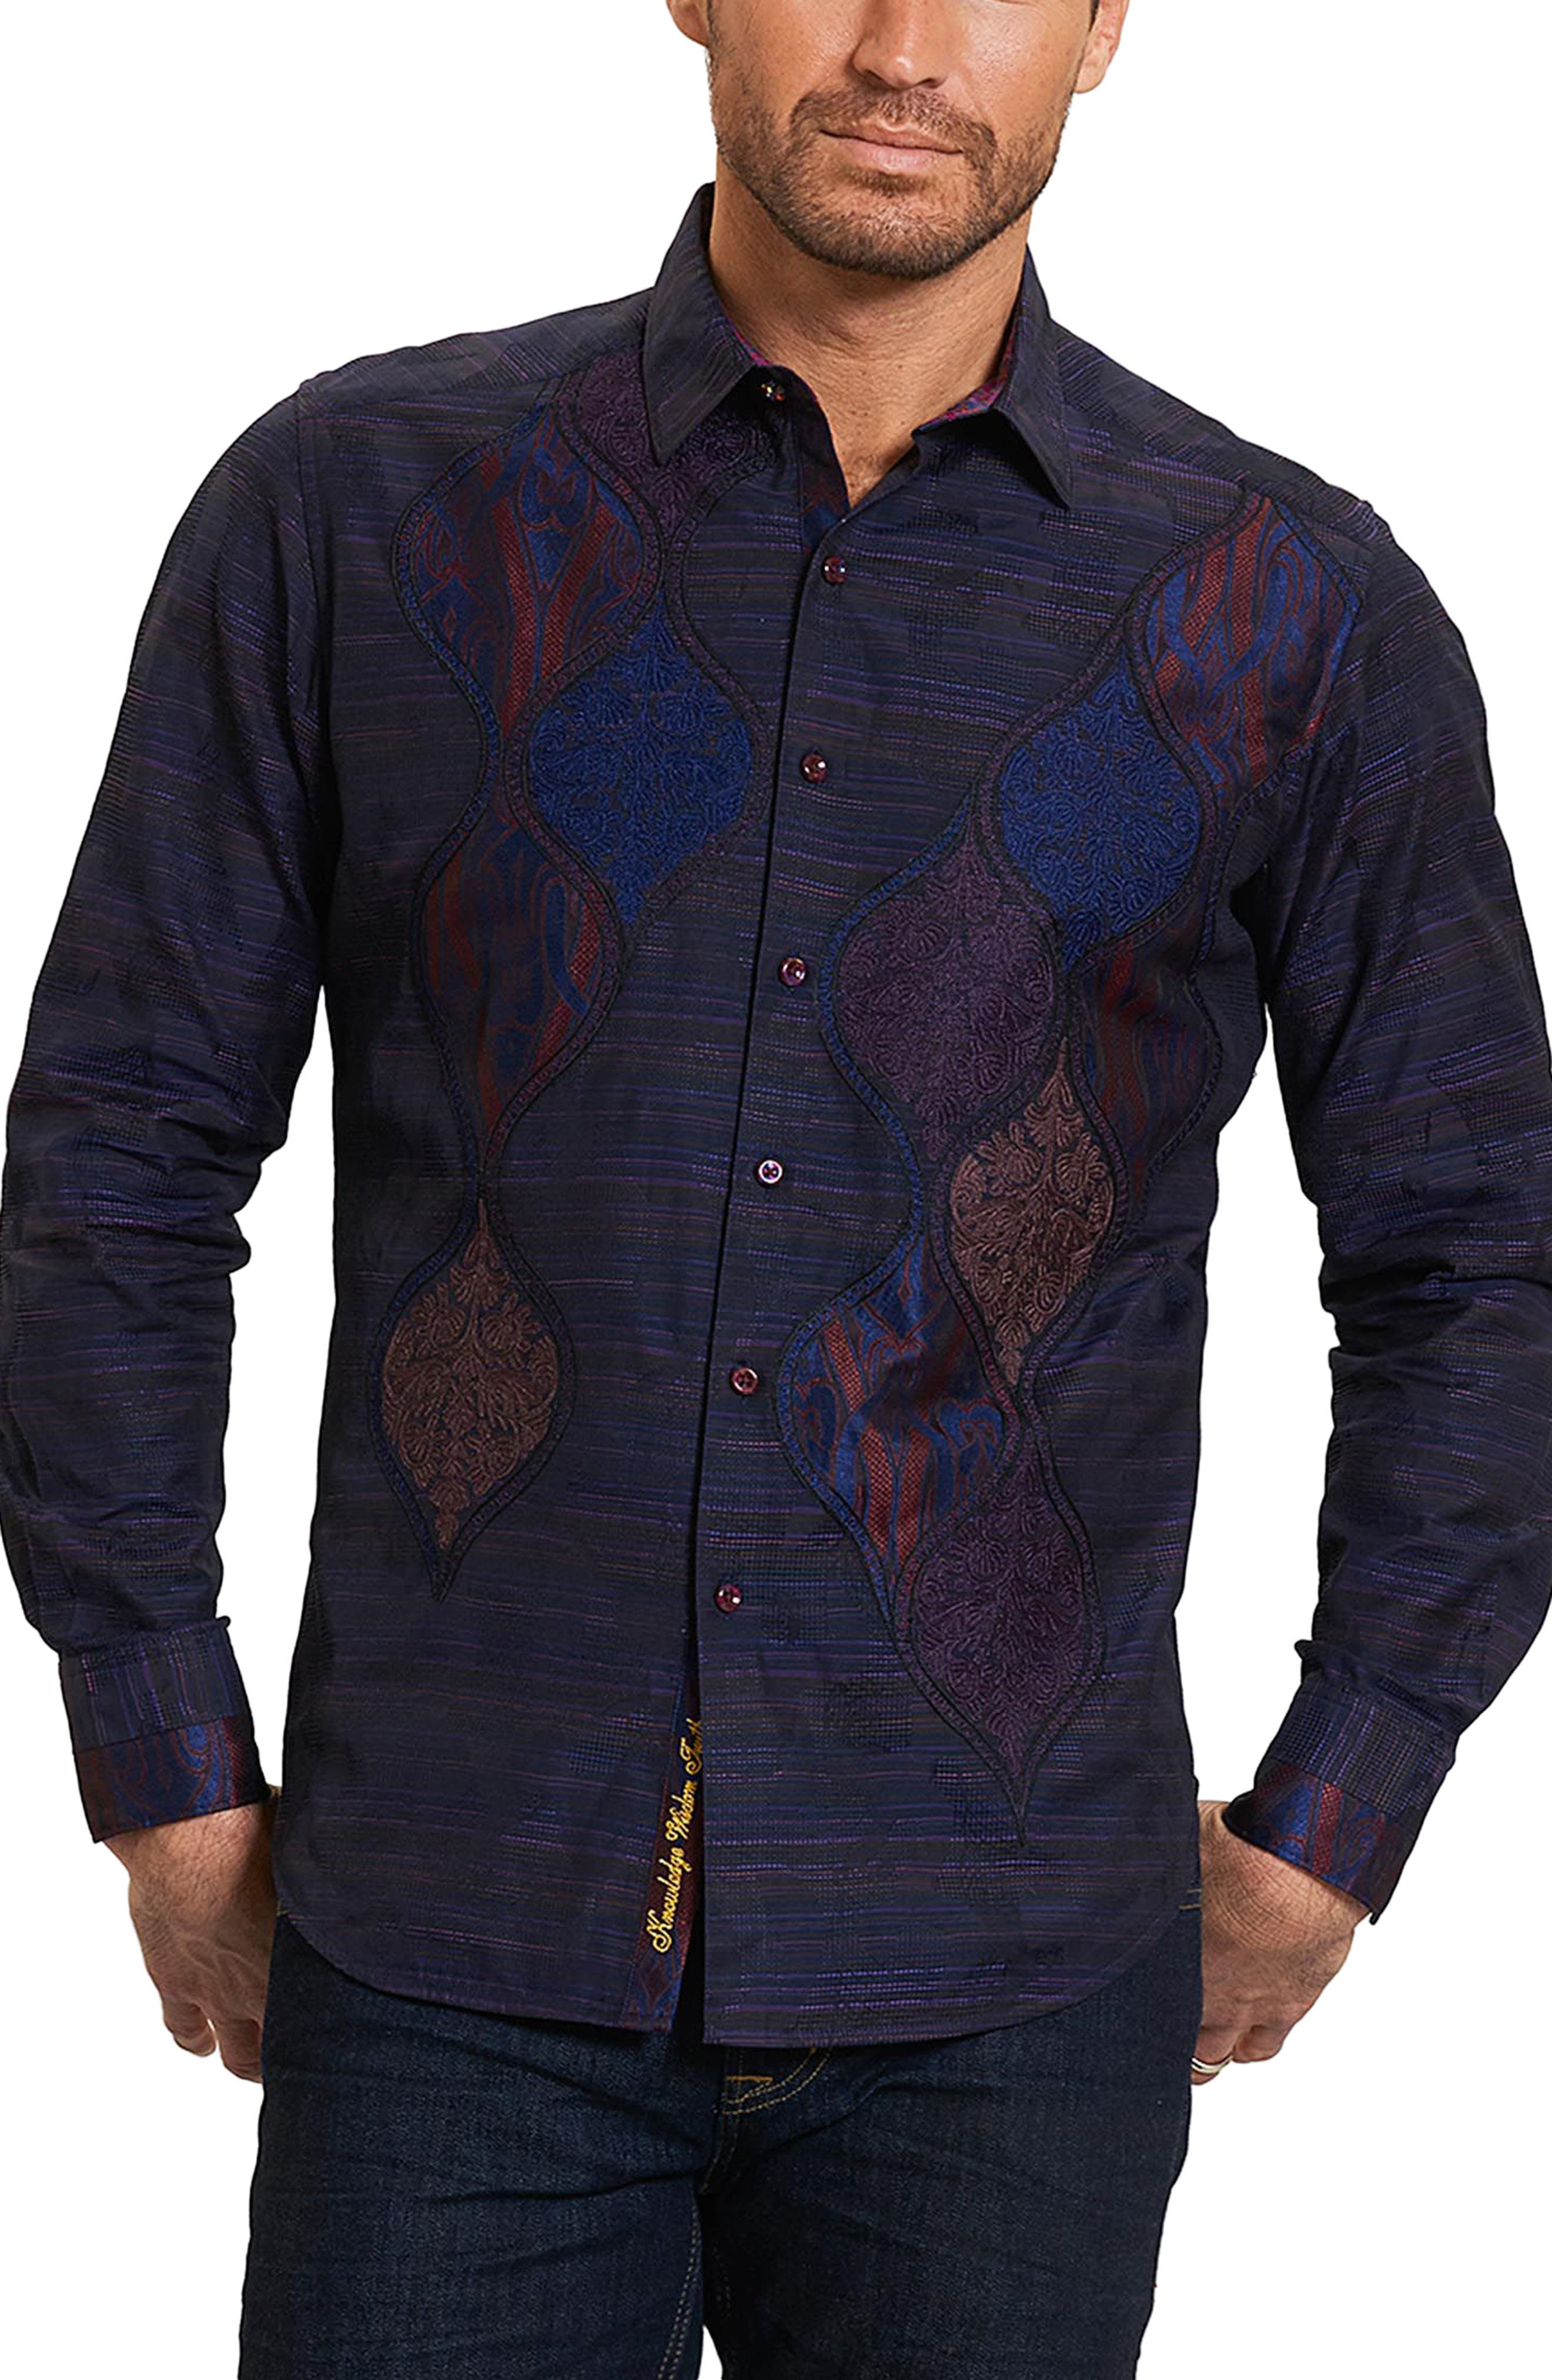 El Rey Classic Fit Embroidered Sport Shirt,                             Main thumbnail 1, color,                             Purple